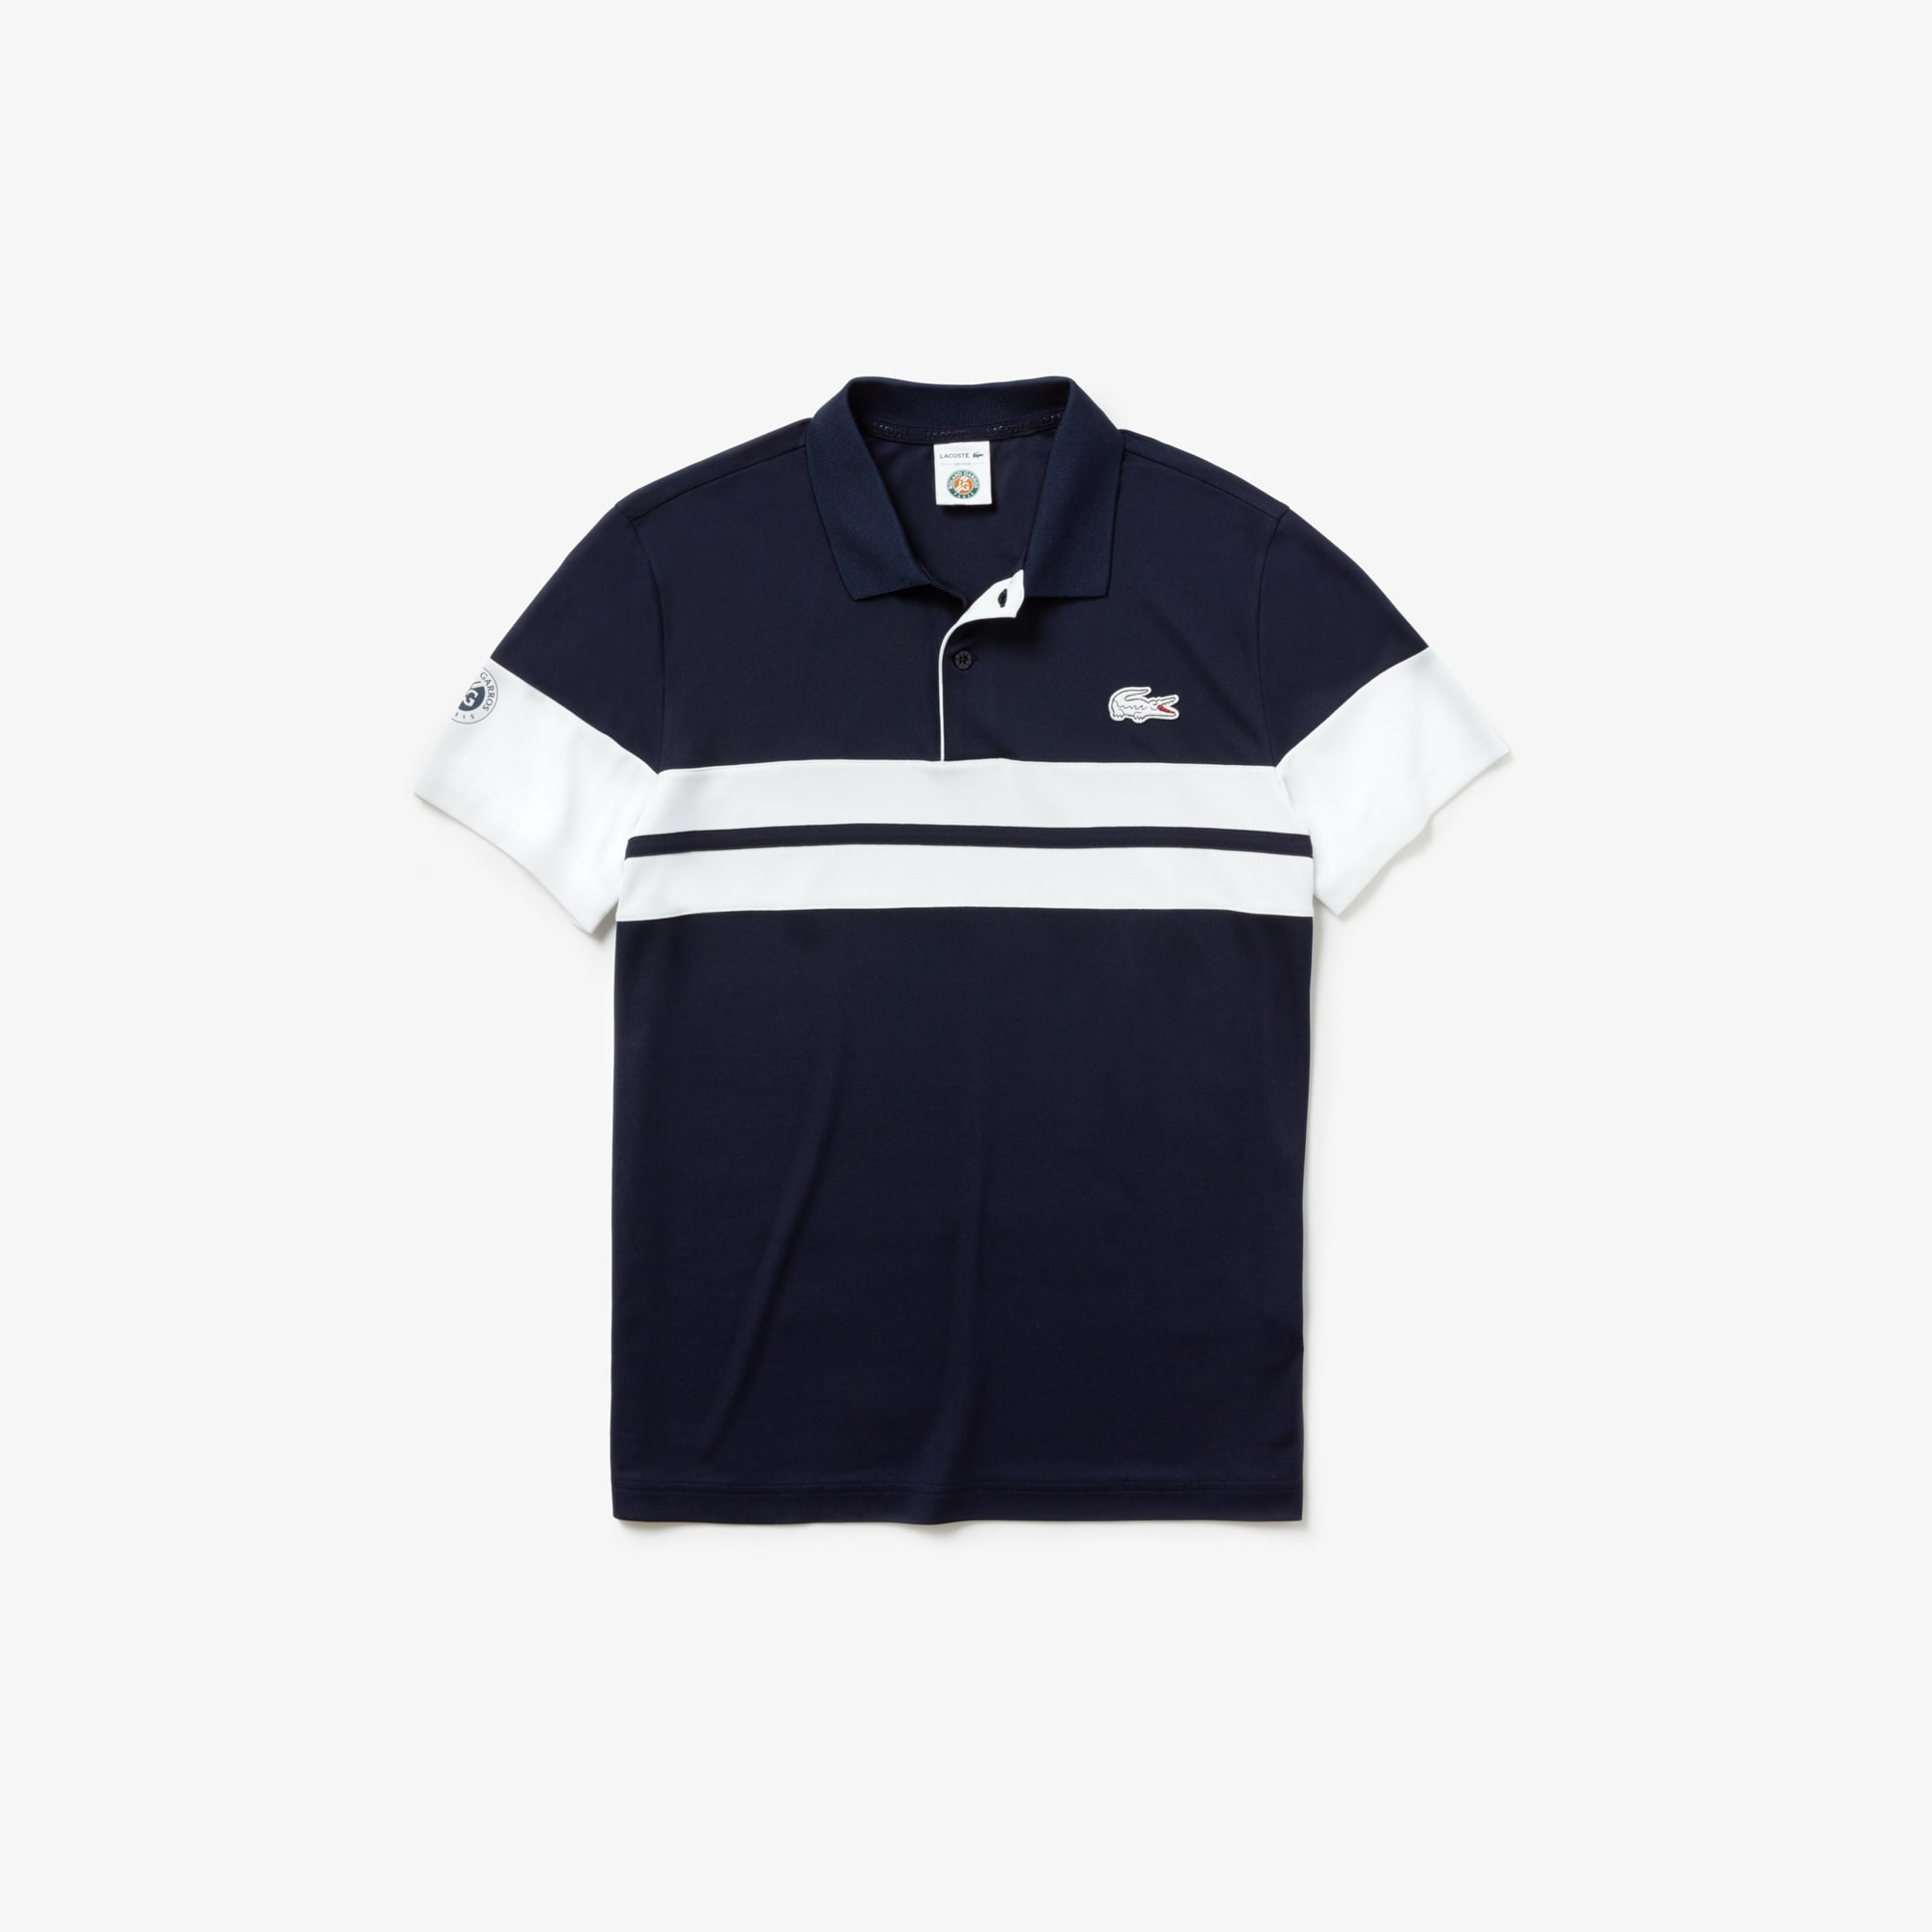 Men's Lacoste SPORT French Open Edition Striped Tech Piqué Polo Shirt